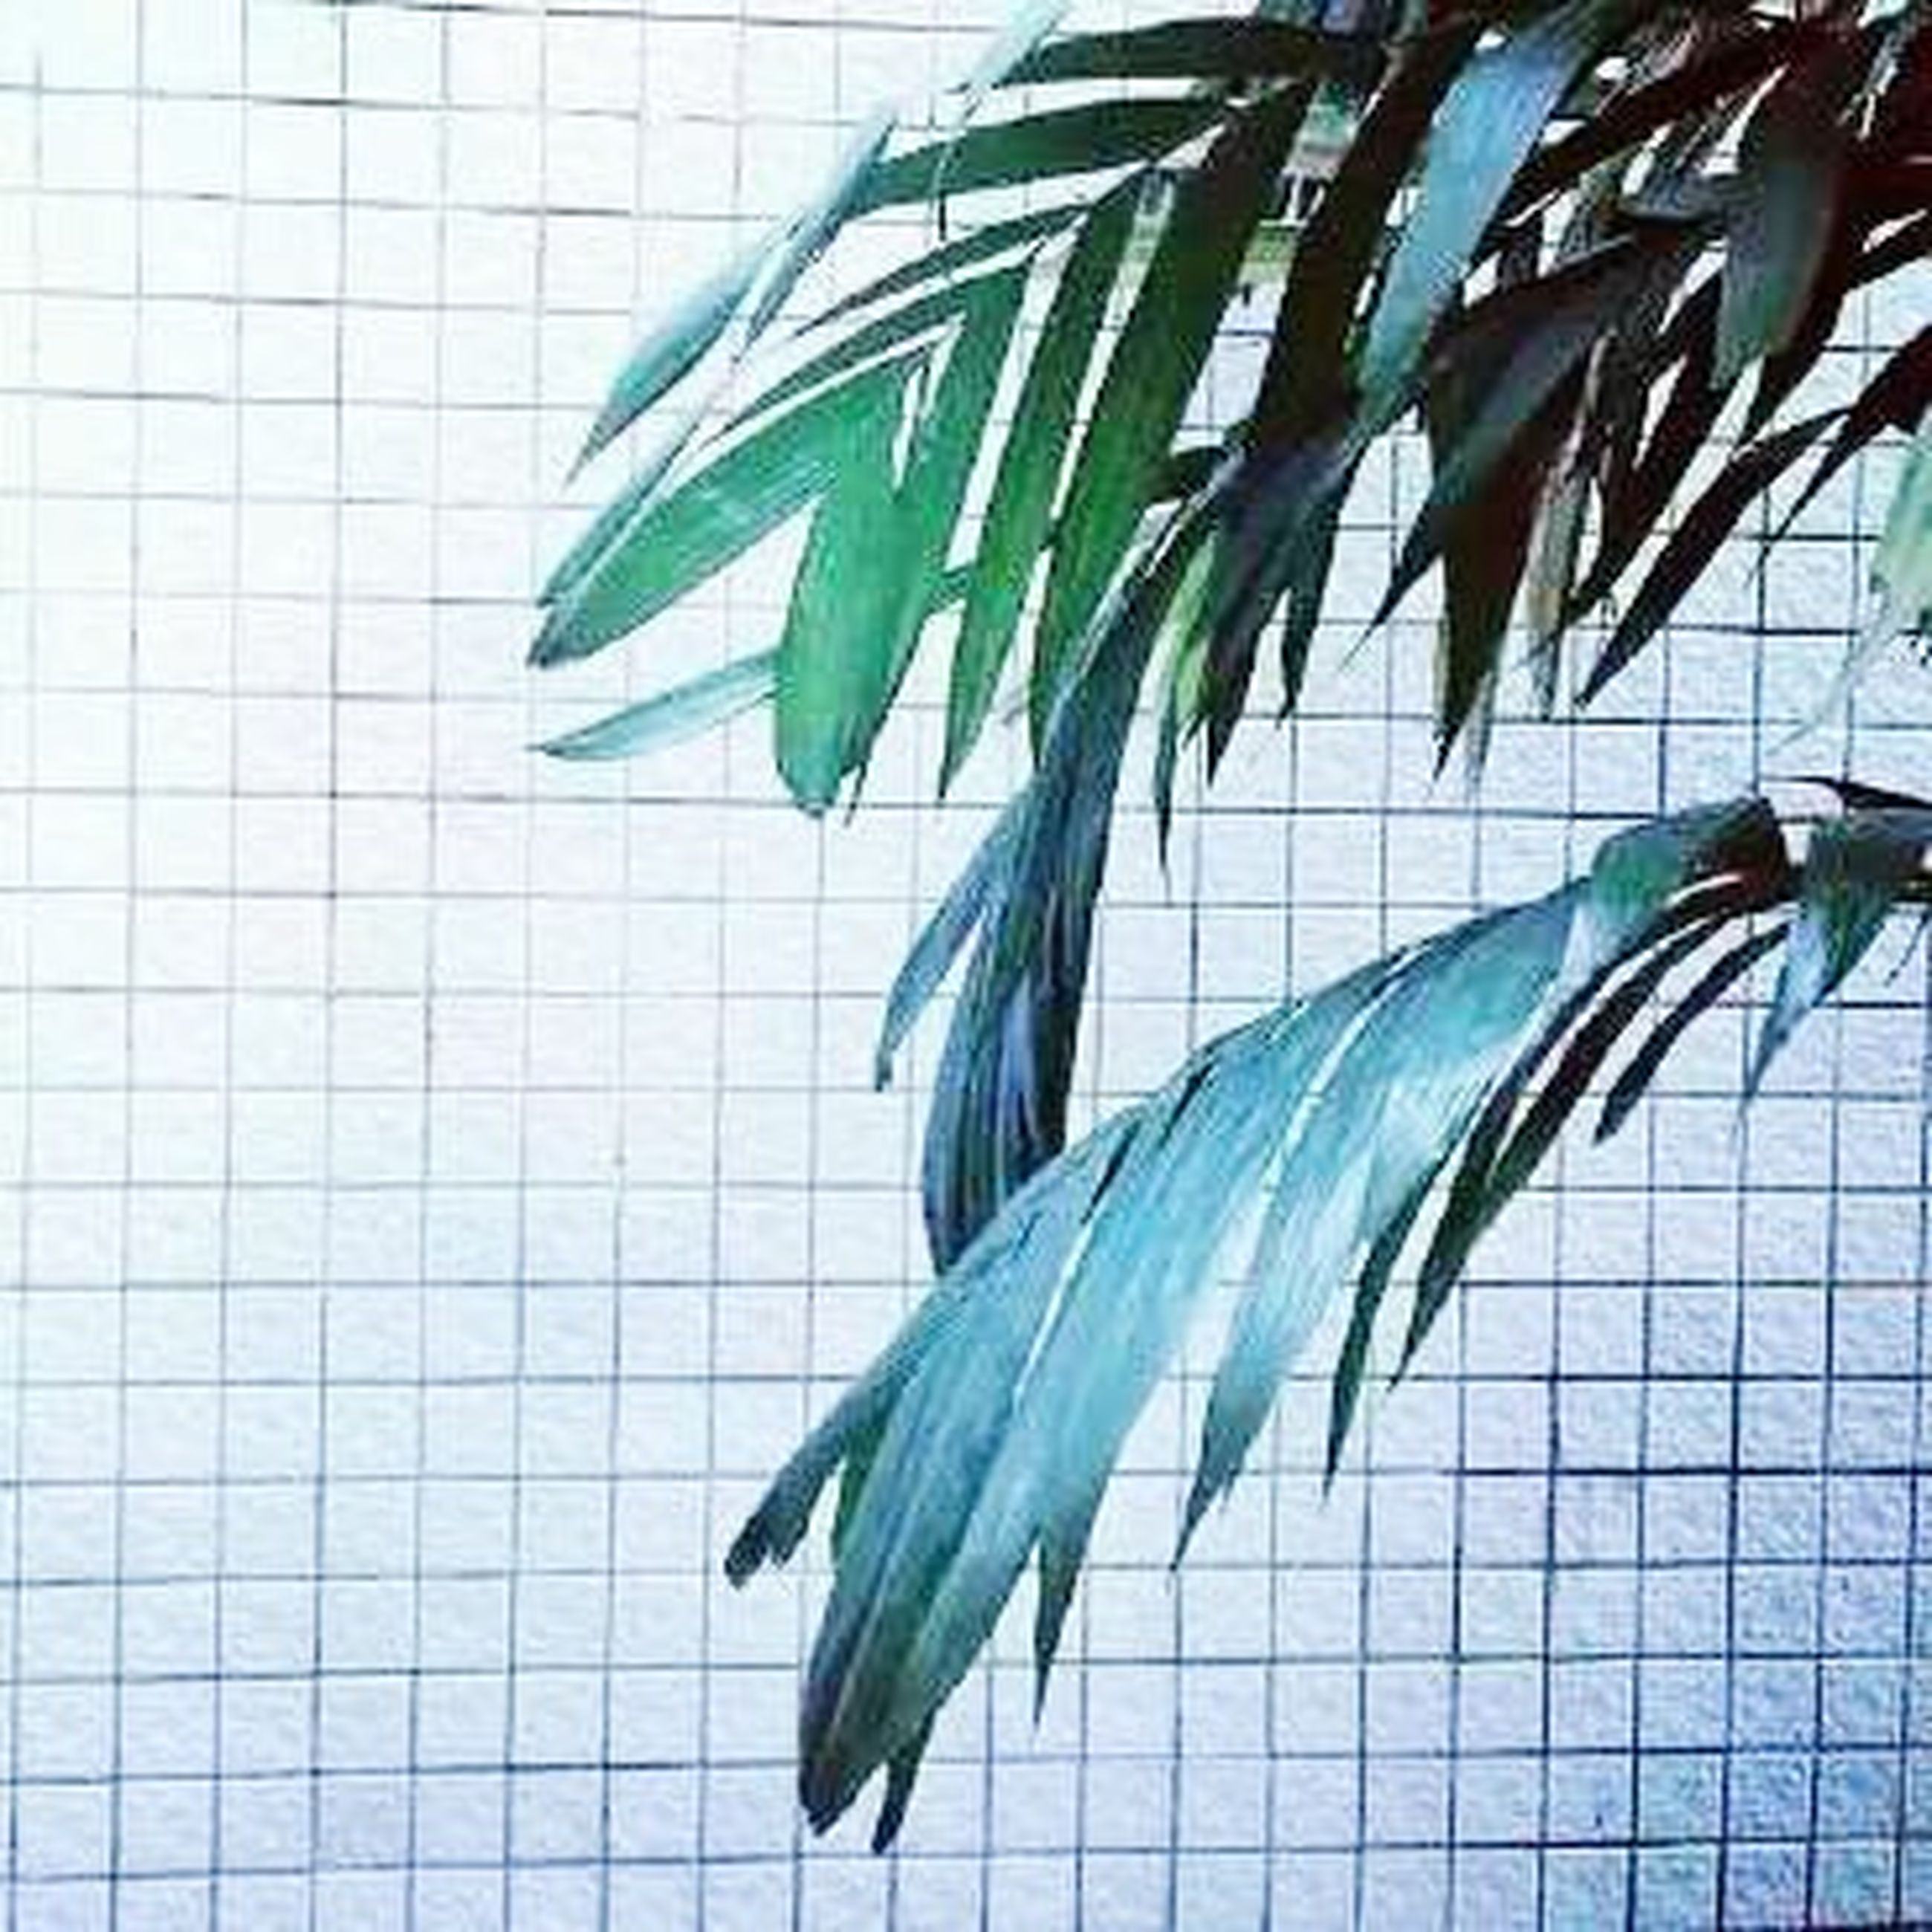 leaf, indoors, green color, potted plant, plant, close-up, no people, wall - building feature, growth, pattern, green, day, still life, freshness, window, wall, leaves, high angle view, nature, built structure